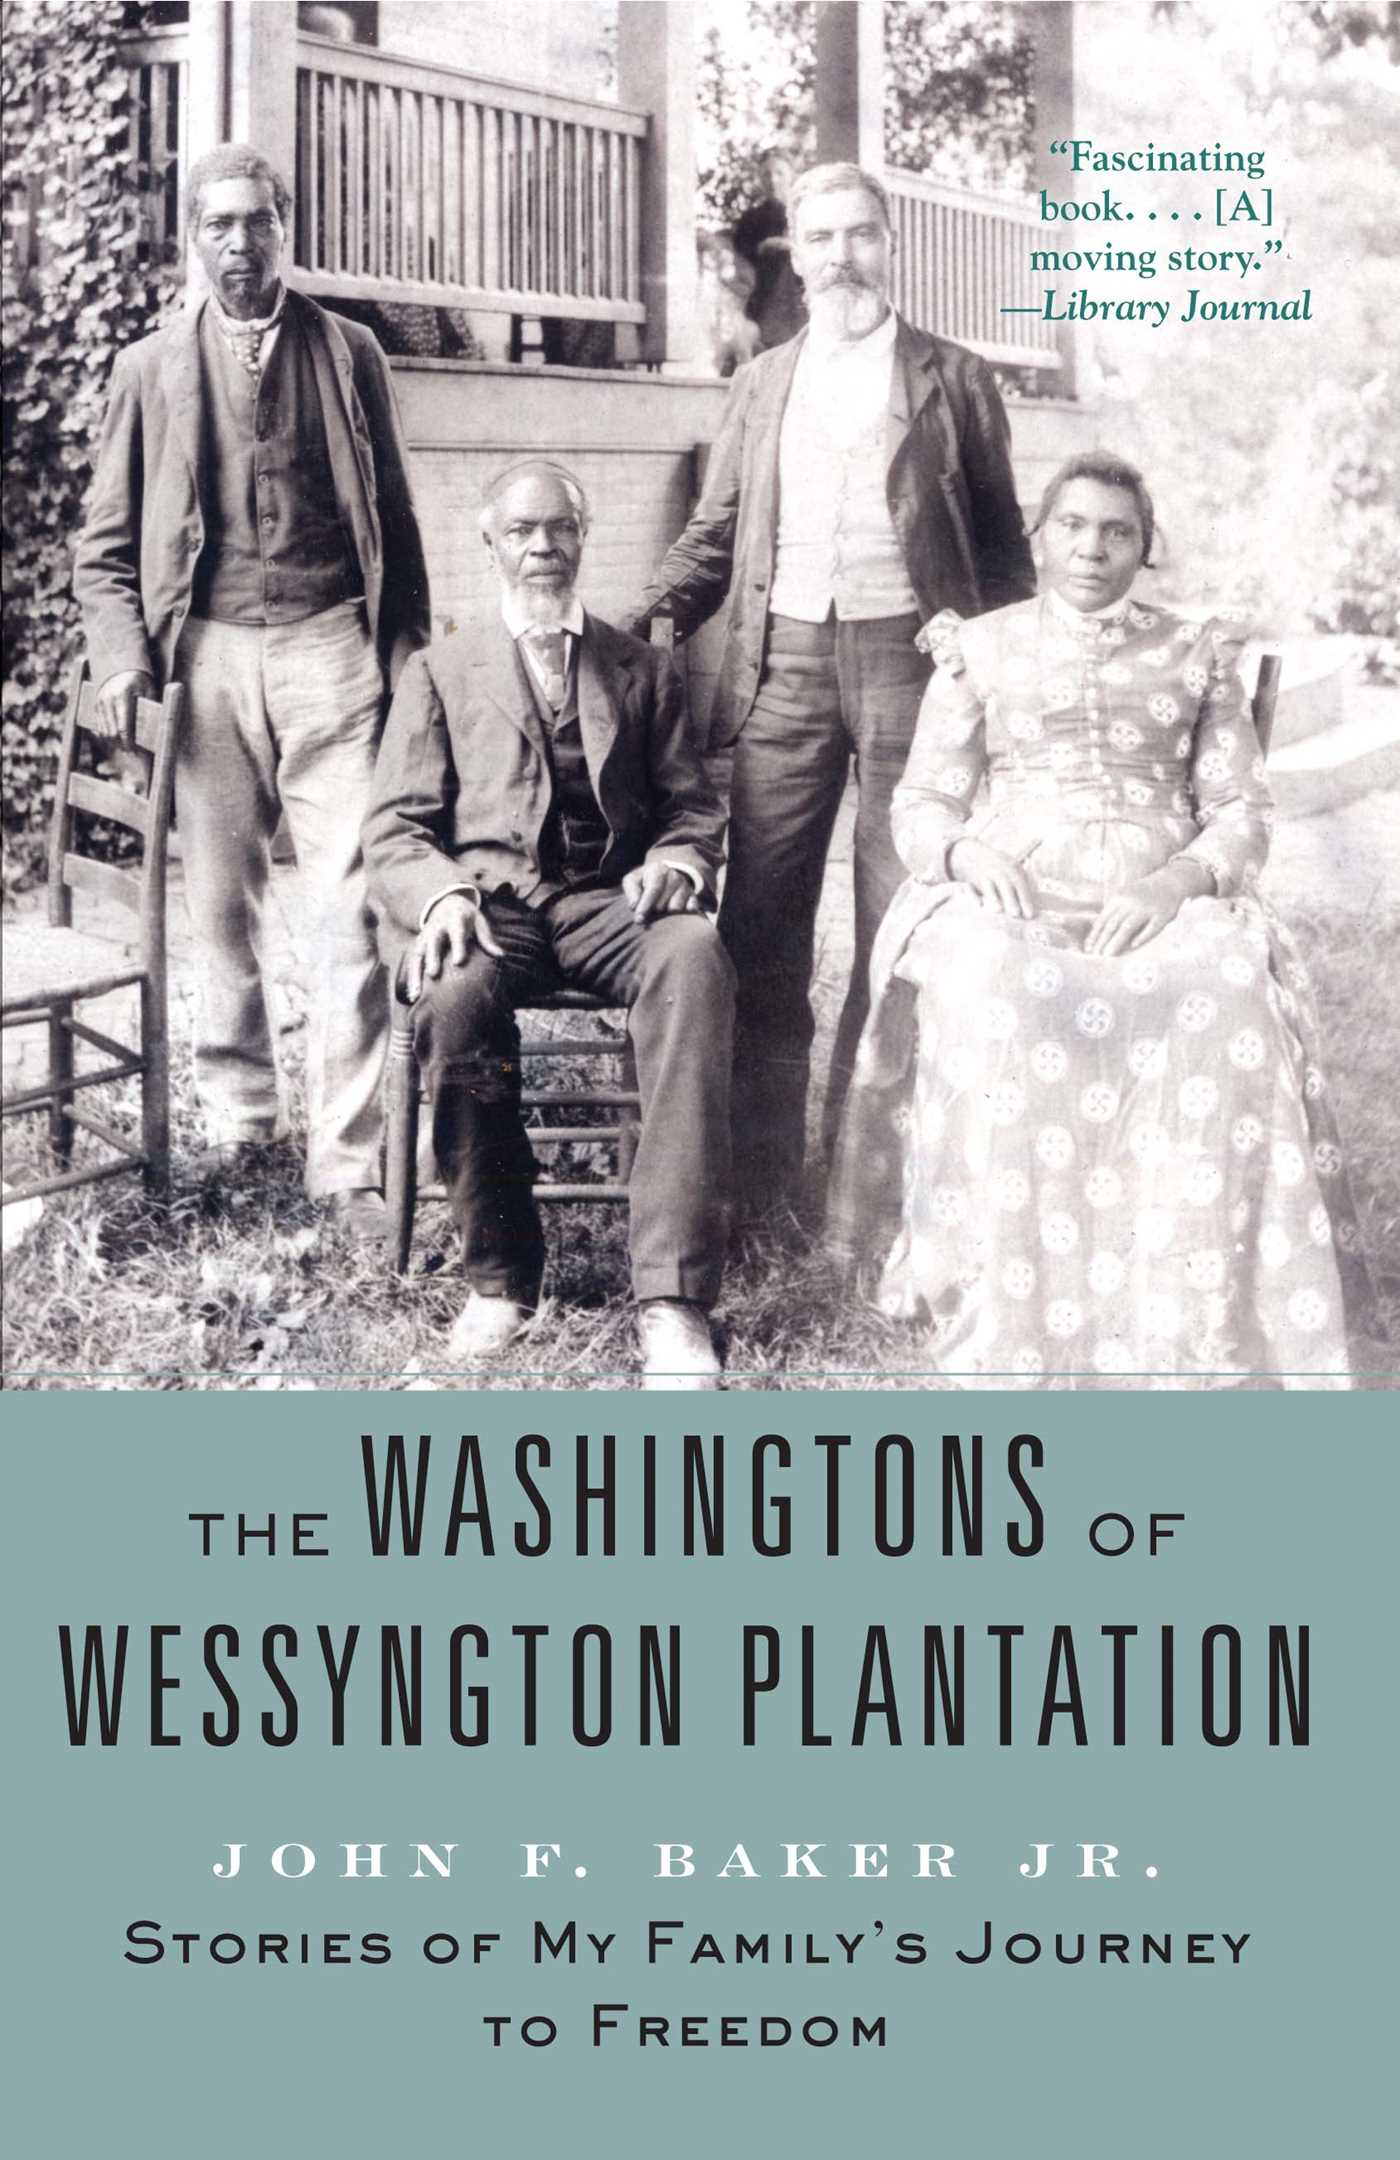 Washingtons-of-wessyngton-plantation-9781416570332_hr